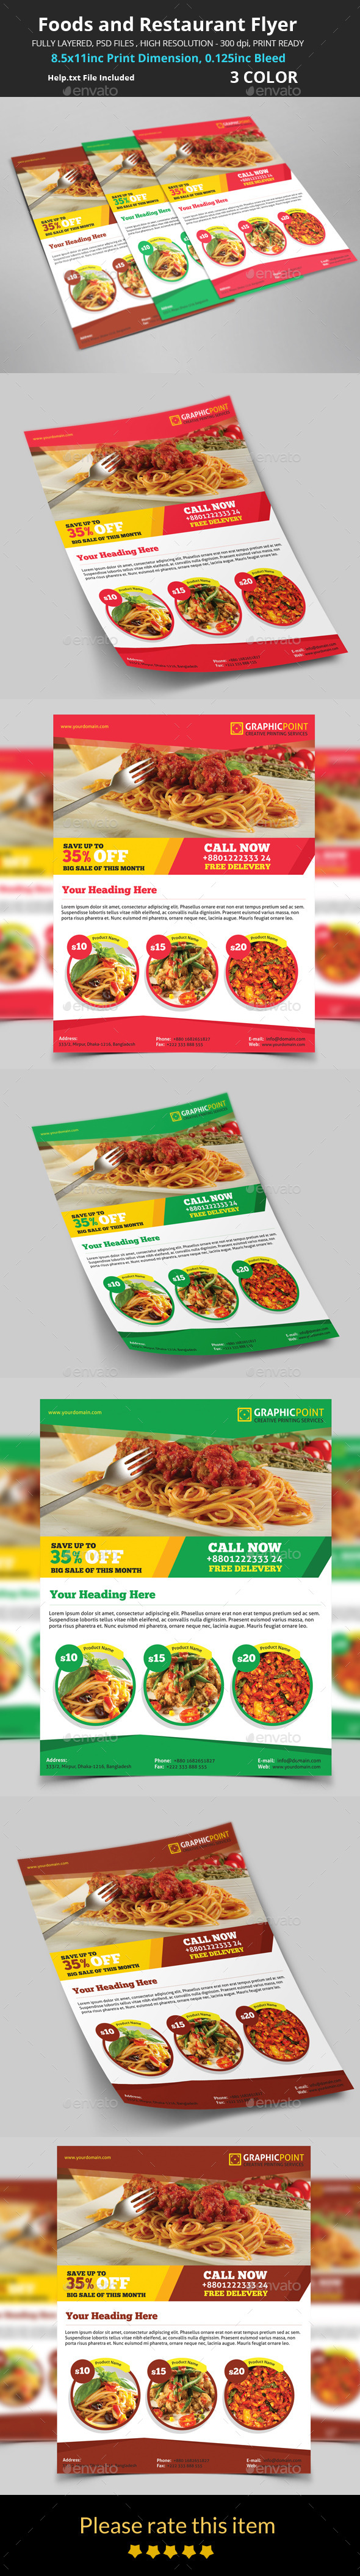 GraphicRiver Foods and Restaurant Flyer 8818725